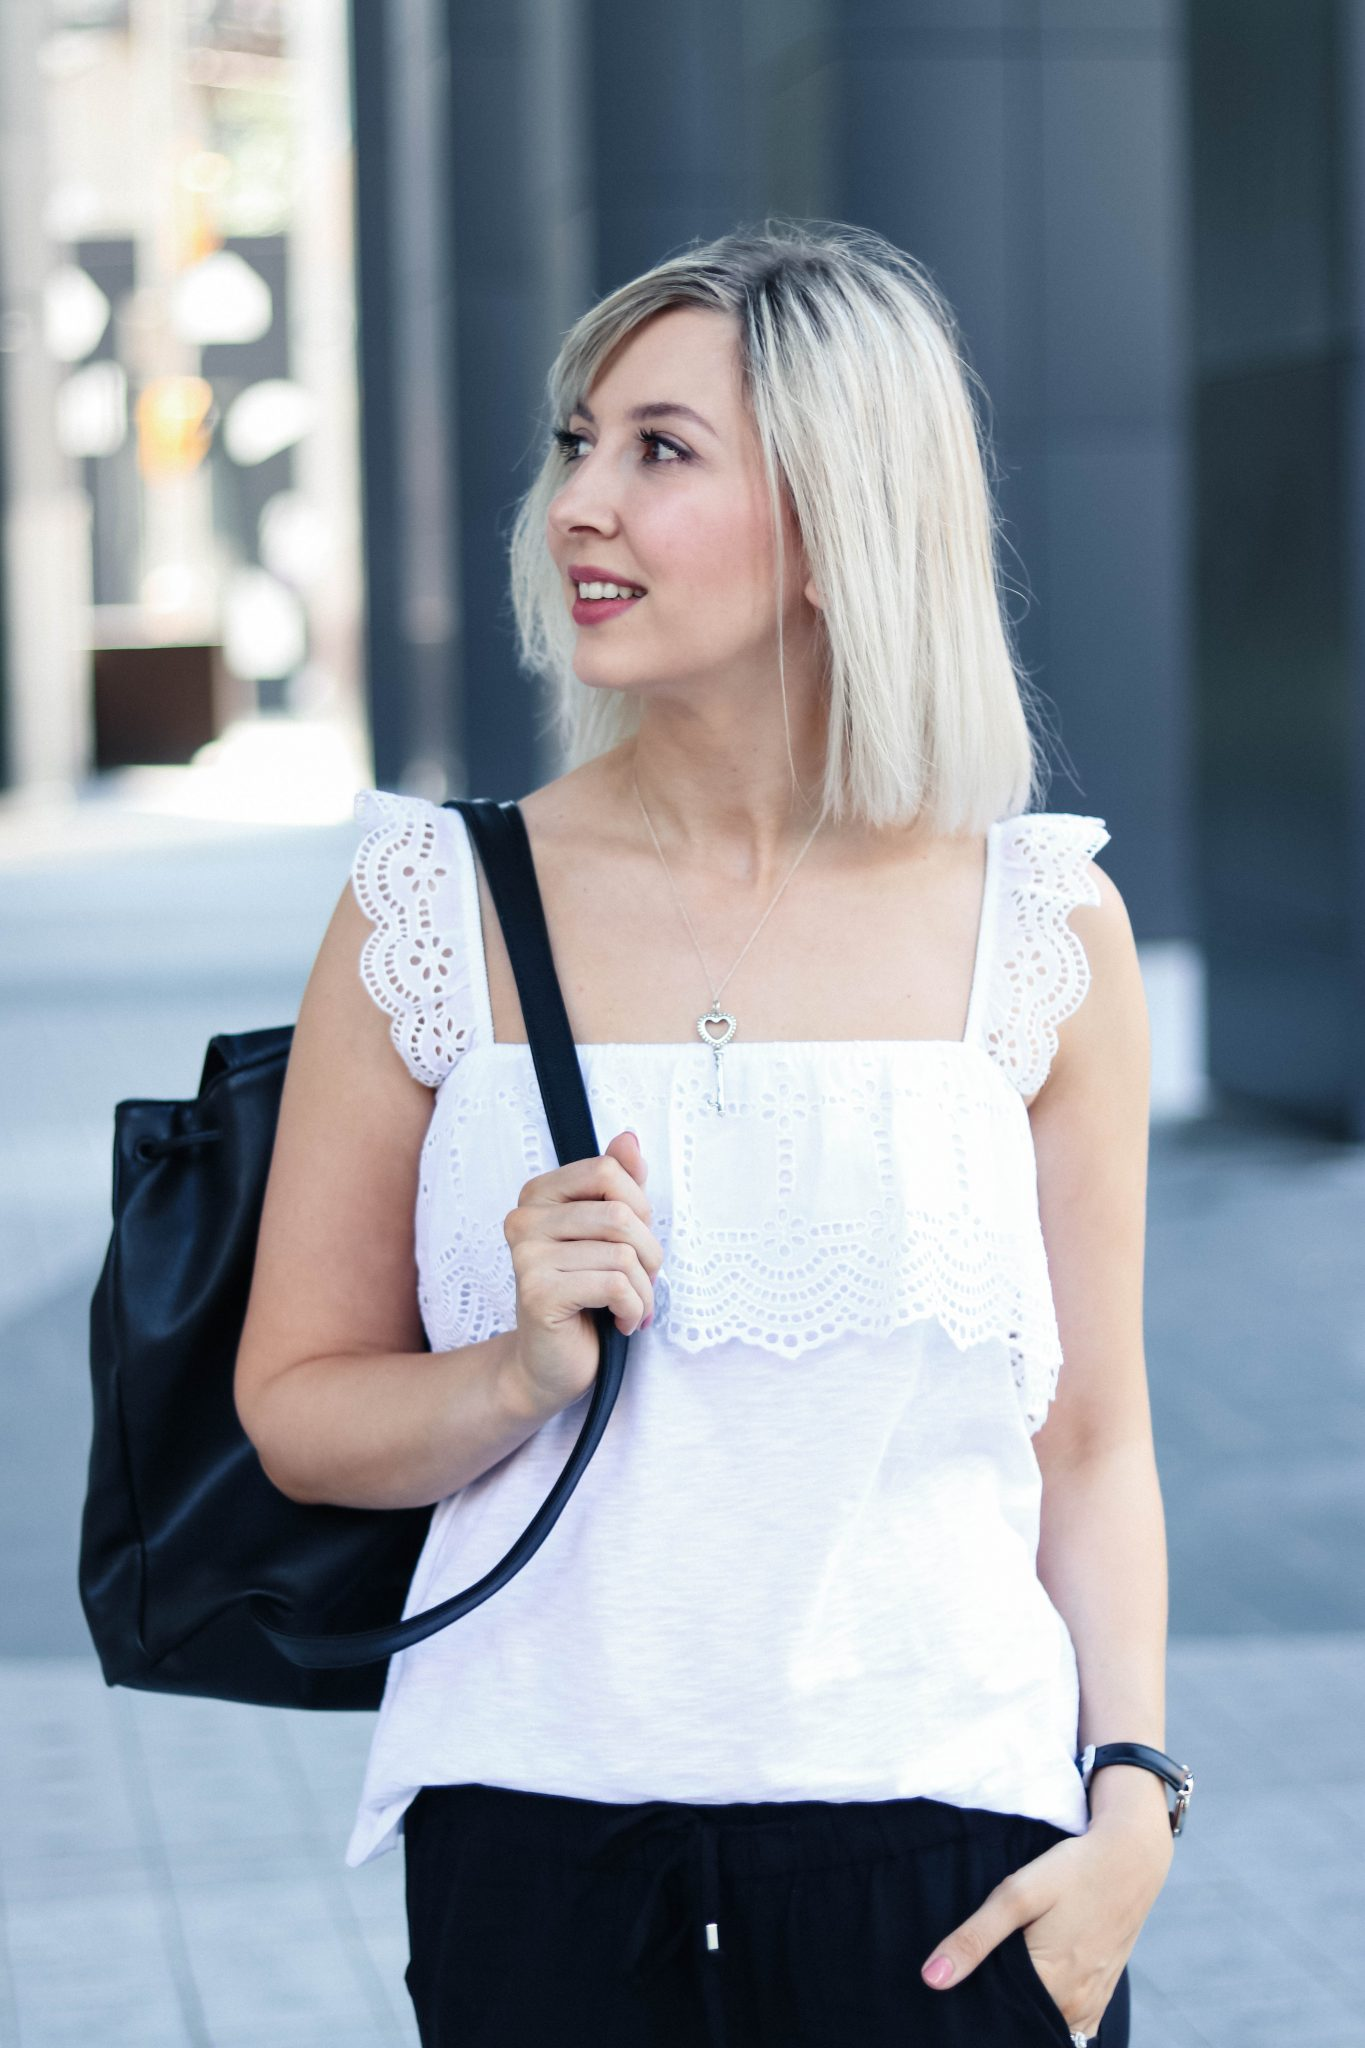 hm broderie anglaise top casual summer style 12